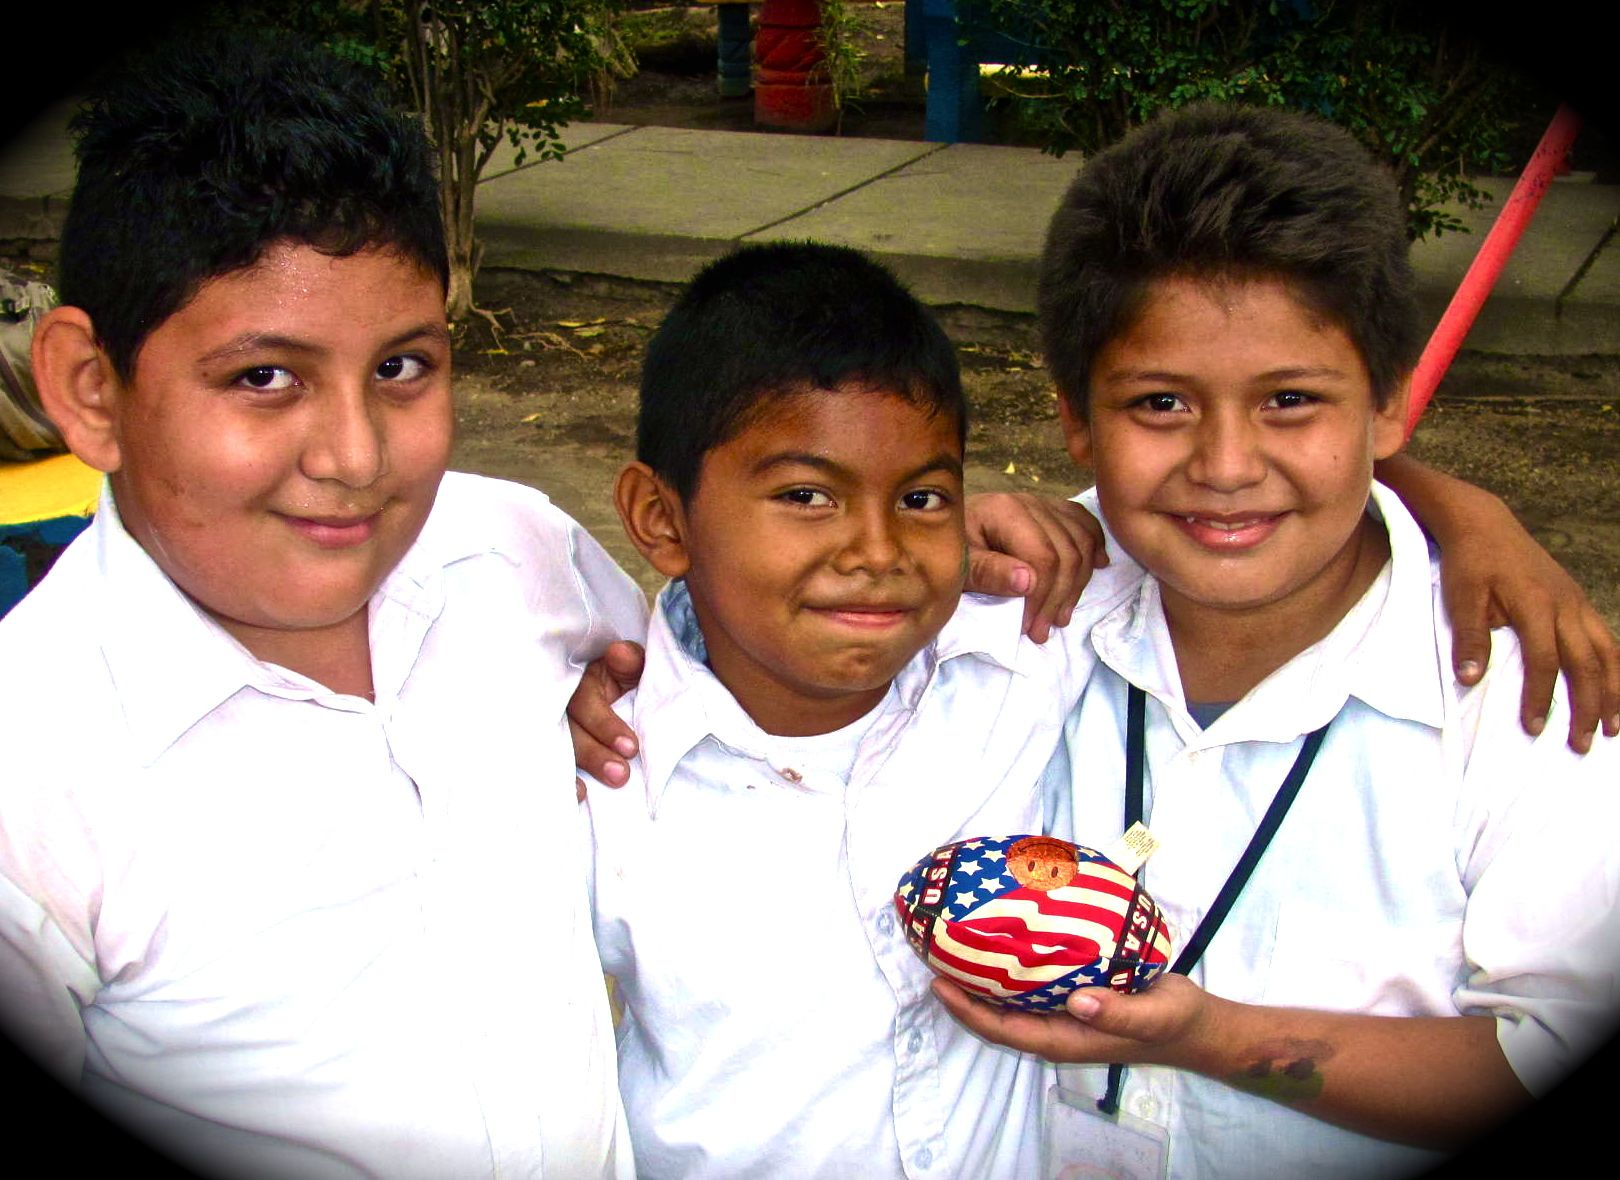 We stumbled upon local school boys playing an American game in Nicaragua